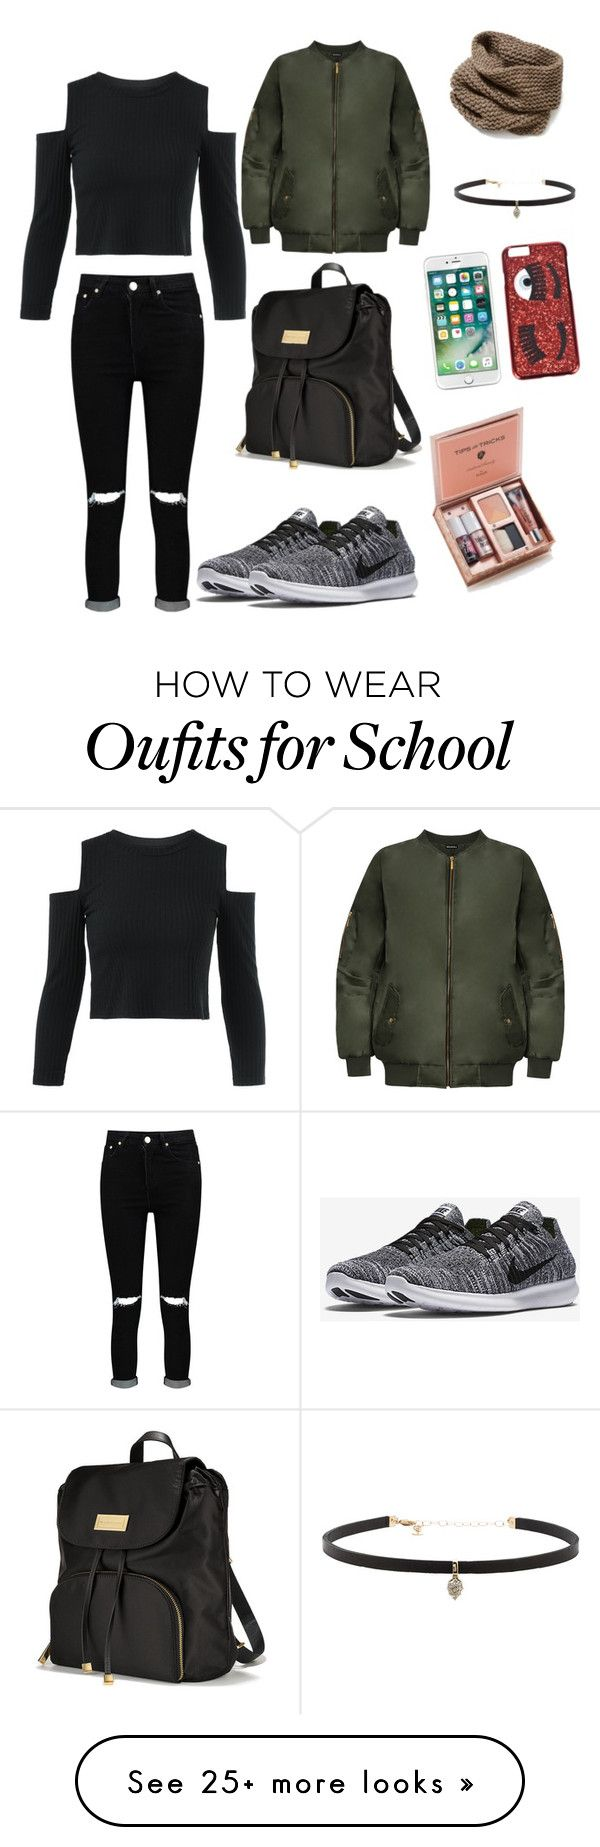 """School look"" by llookss on Polyvore featuring Boohoo, WearAll, NIKE, Victoria's Secret, Chiara Ferragni, Lafayette 148 New York and Carbon & Hyde"